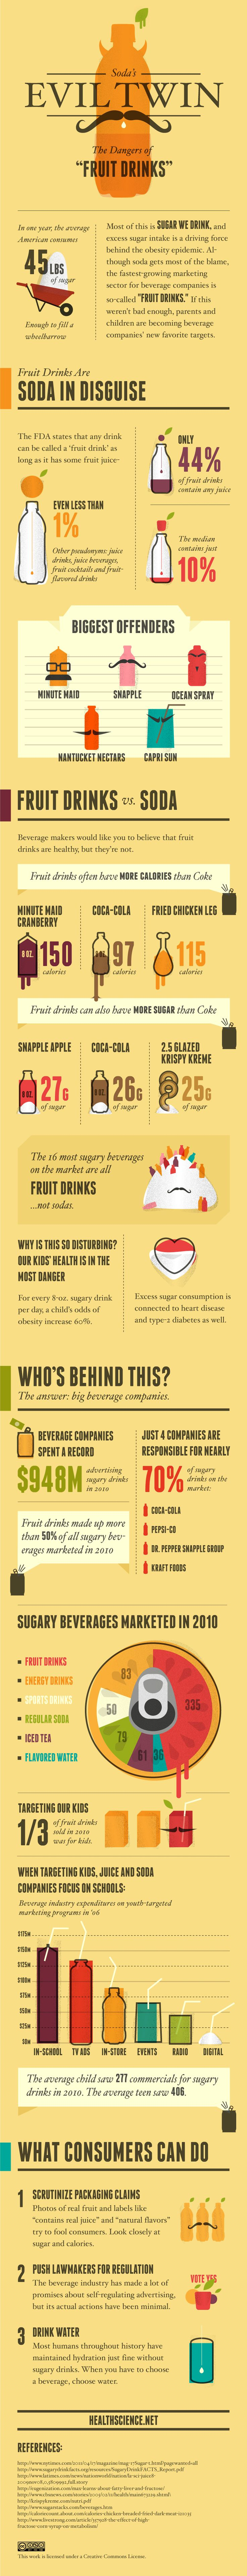 WE DON'T NEED SUGARY DRINKS!  Fruit drinks are as bad/worse than soda.  Seriously...don't drink your calories.